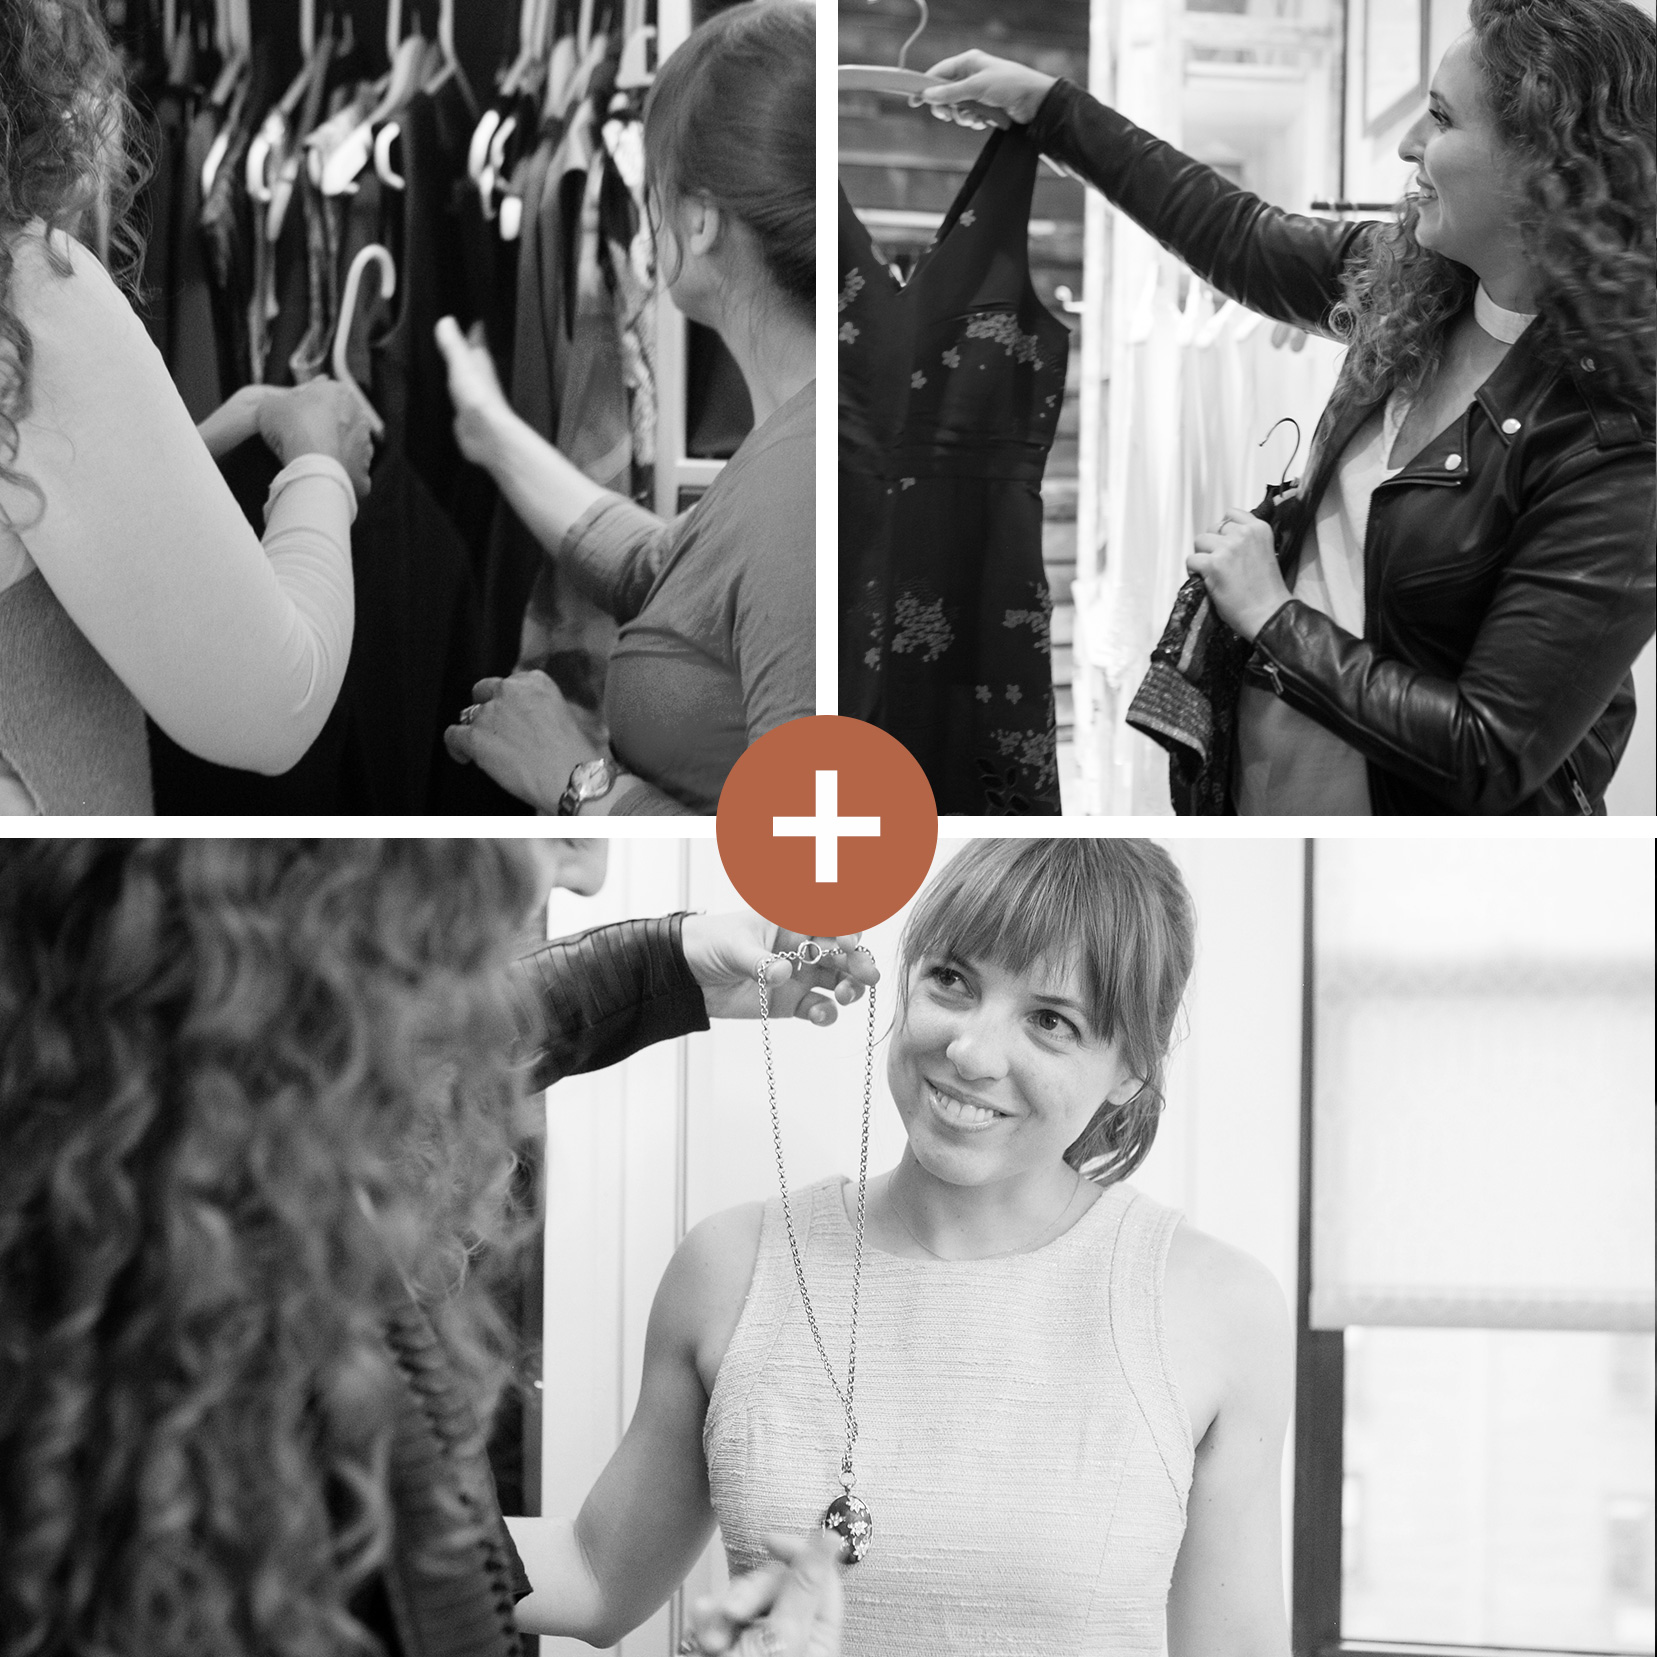 Copper Style Program - The premier program is style at scale. By partnering with Joanna for at least 3 months, you'll get a 360˚ wardrobe makeover for a whole new you.Includes Sort + Shop + Style, one-on-one coaching sessions, and more!